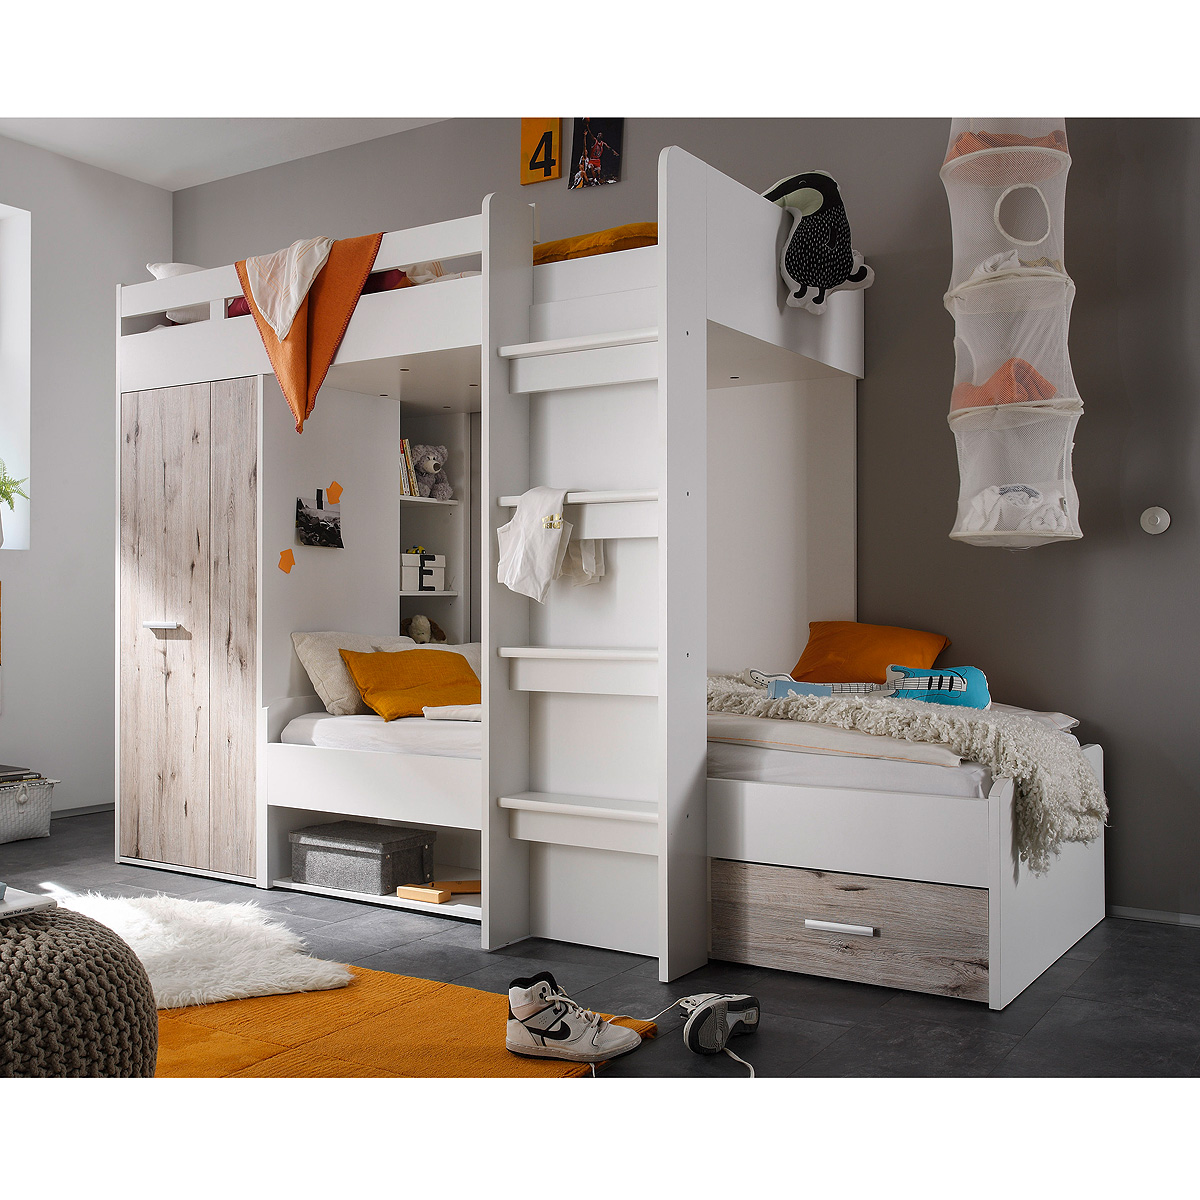 hochbett maxi kinderbett etagenbett kinderzimmerbett bett wei sandeiche 90x200 ebay. Black Bedroom Furniture Sets. Home Design Ideas